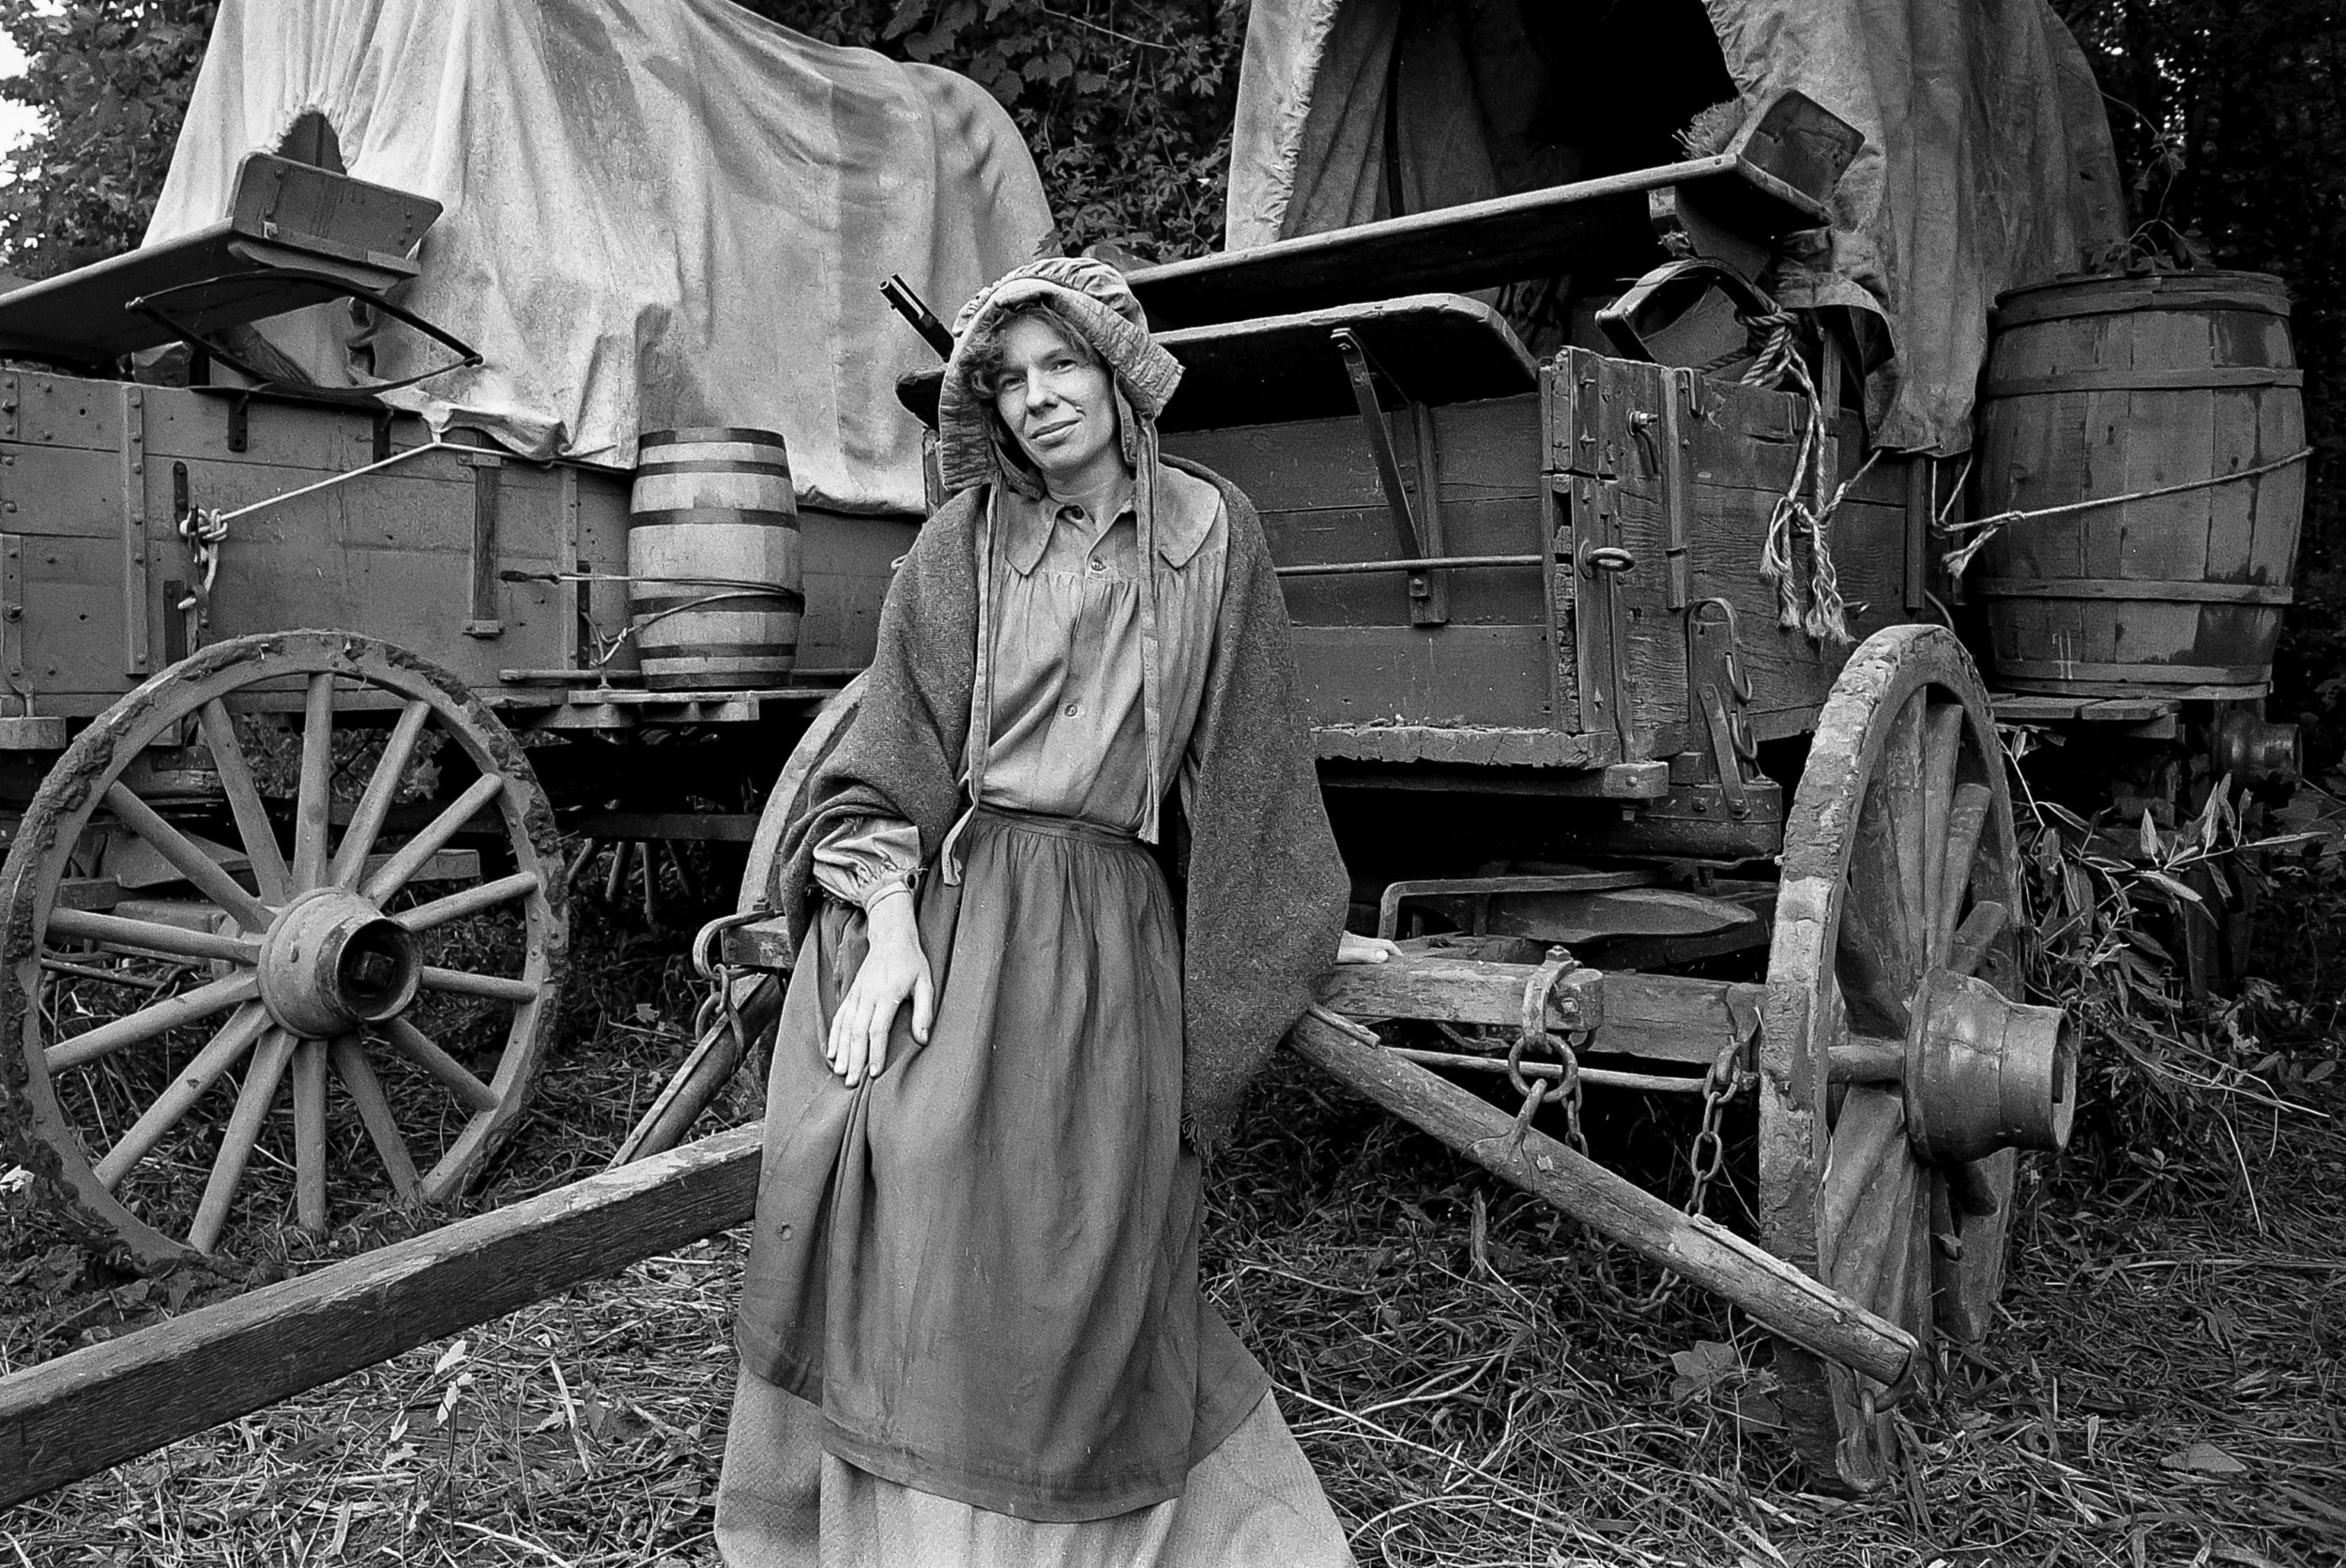 """""""""""The don't do makeup, they do make down. They want you to look weathered and worn down,"""" said Ada Lynn Shrewsbury of Springfield, who appeared as an extra in the television mini series """"The Chisholms,"""" filmed at New Salem State Historic Site, October 2, 1978. File/Bill Hagen/The State Journal-Register"""